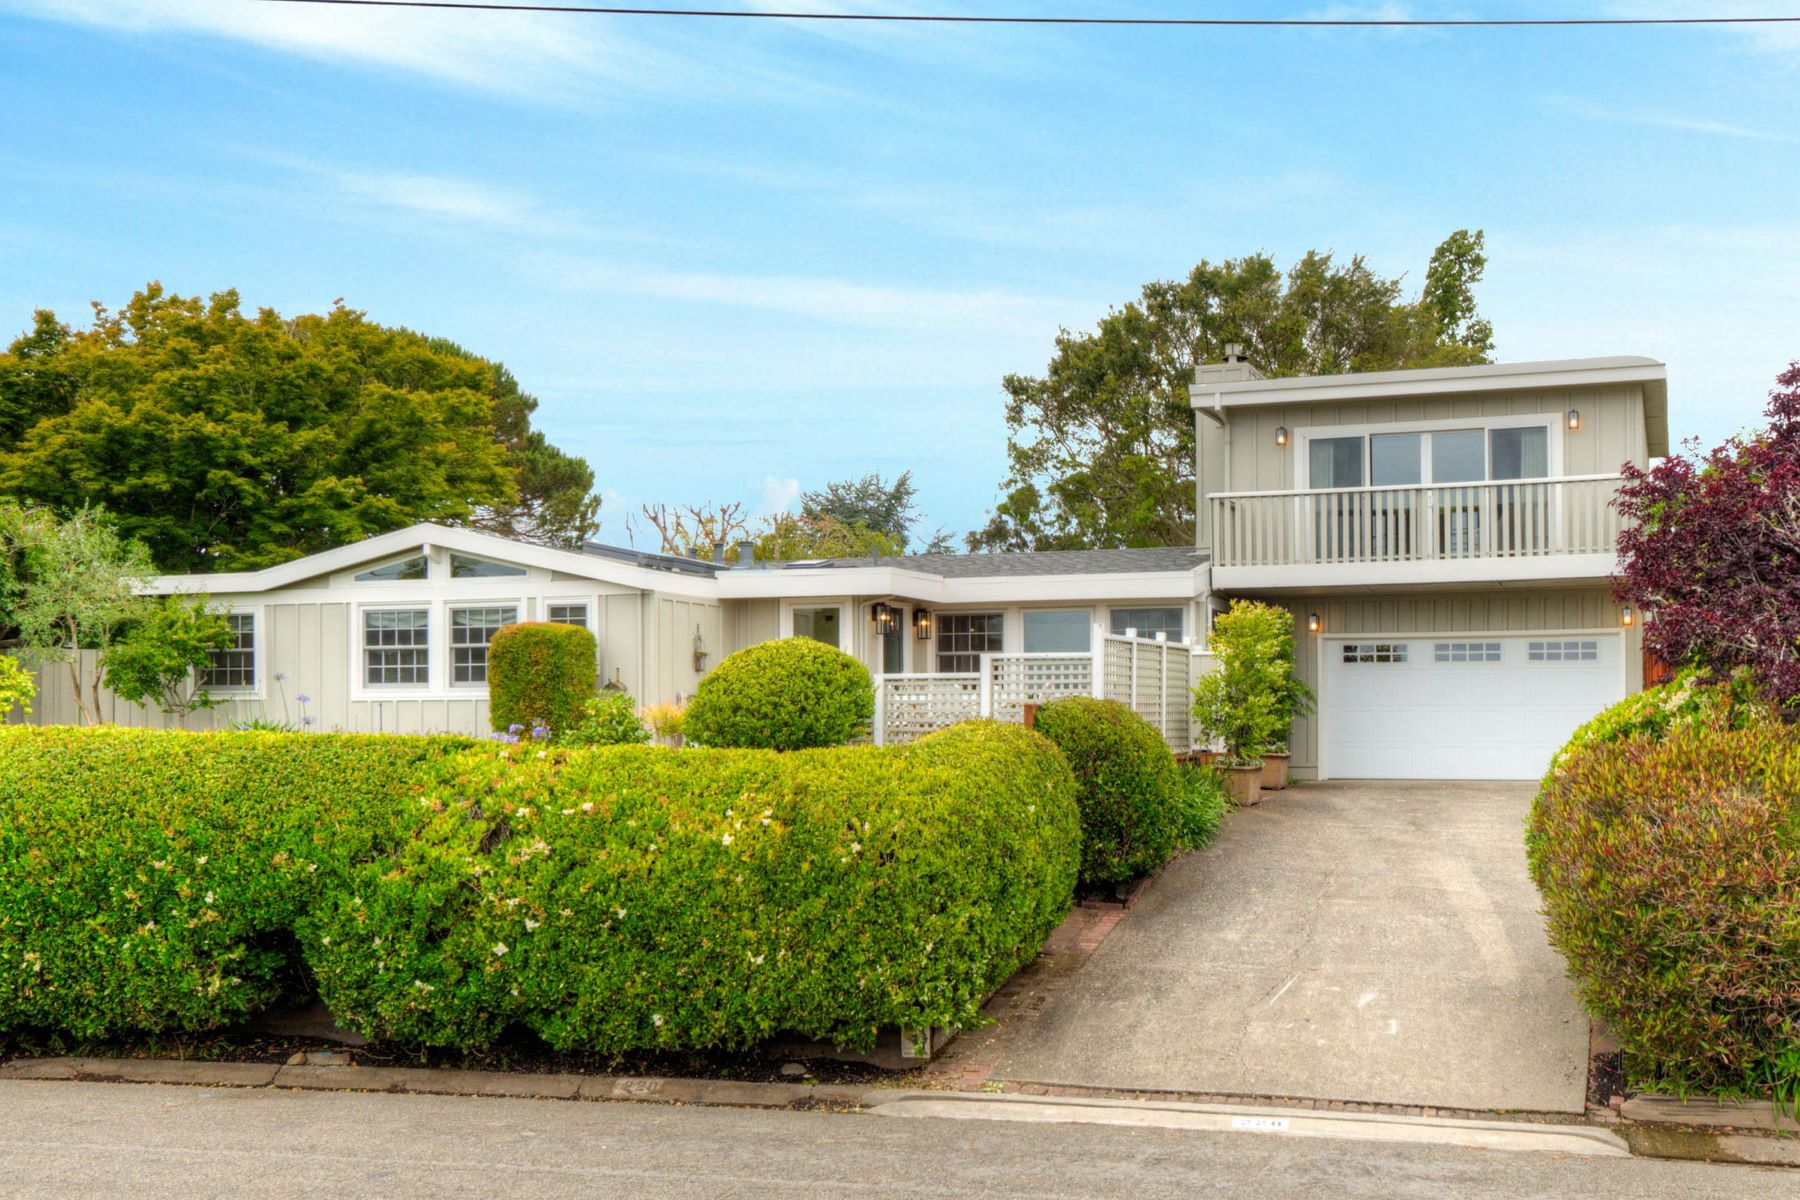 Single Family Home for Sale at Strawberry Cape Cod with San Francisco Views! 220 Reed Blvd Mill Valley, California 94941 United States